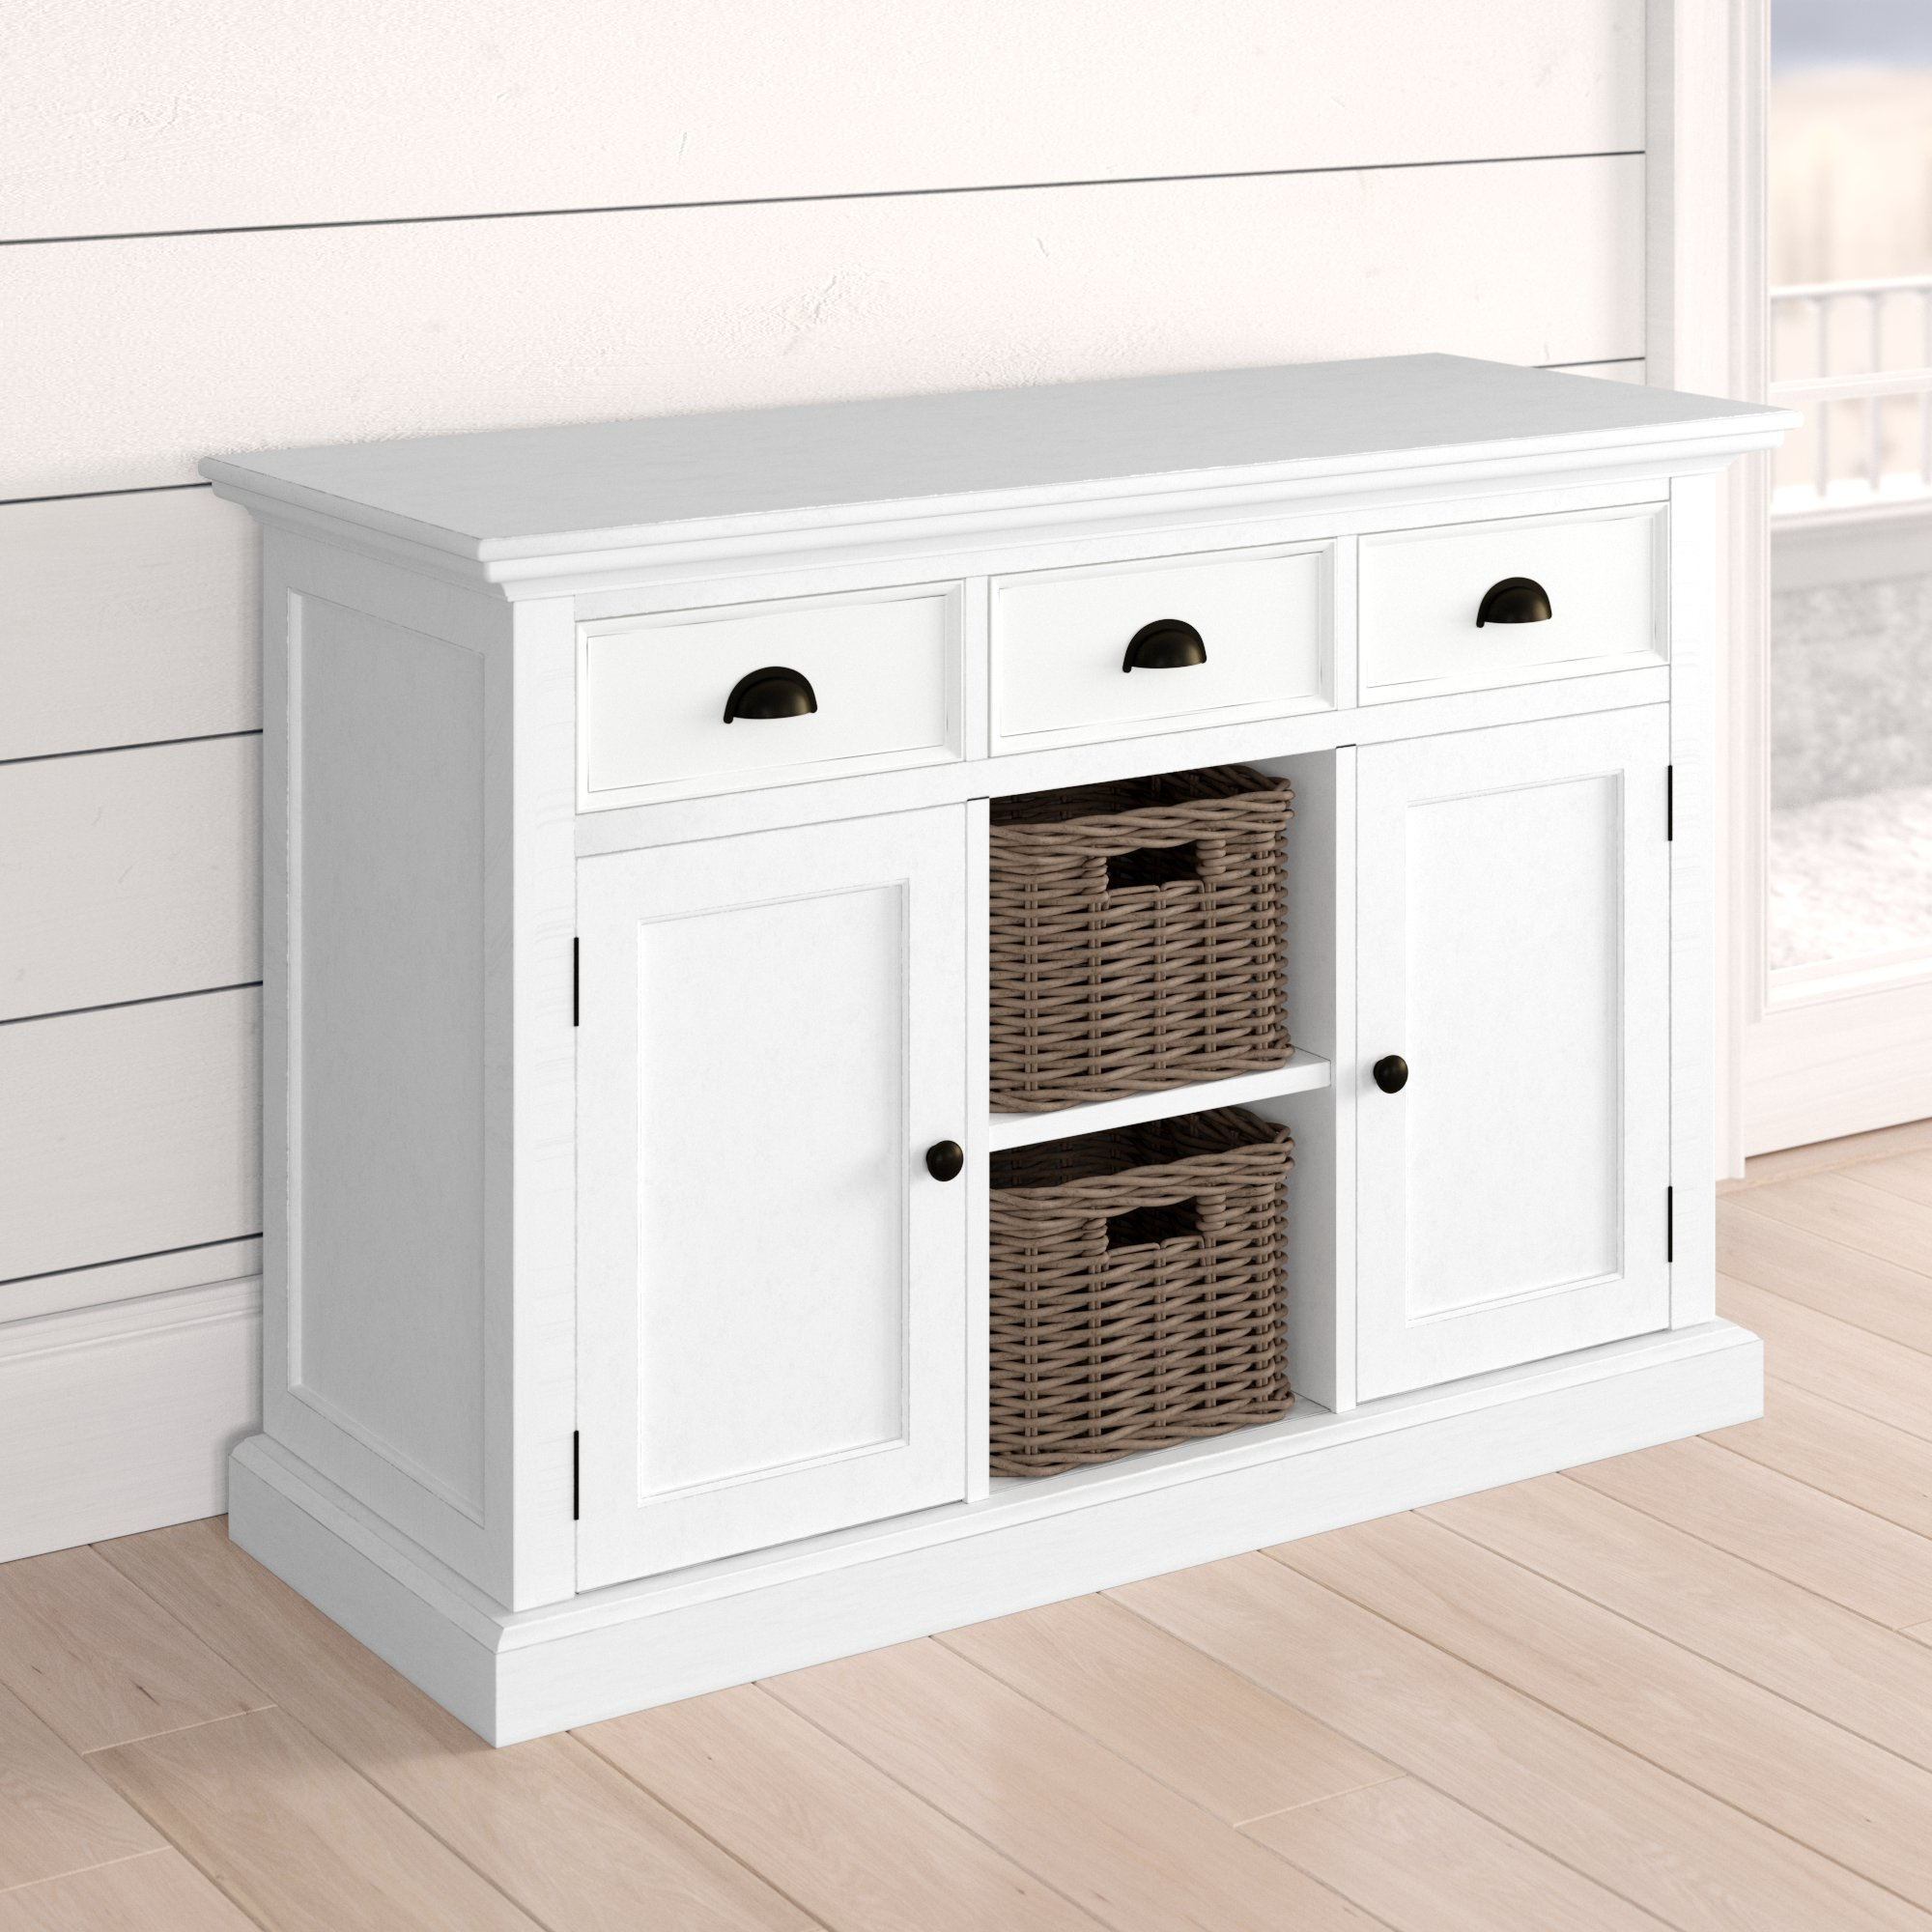 Beachcrest Home Amityville Wood Server & Reviews | Wayfair Inside Amityville Sideboards (View 8 of 20)